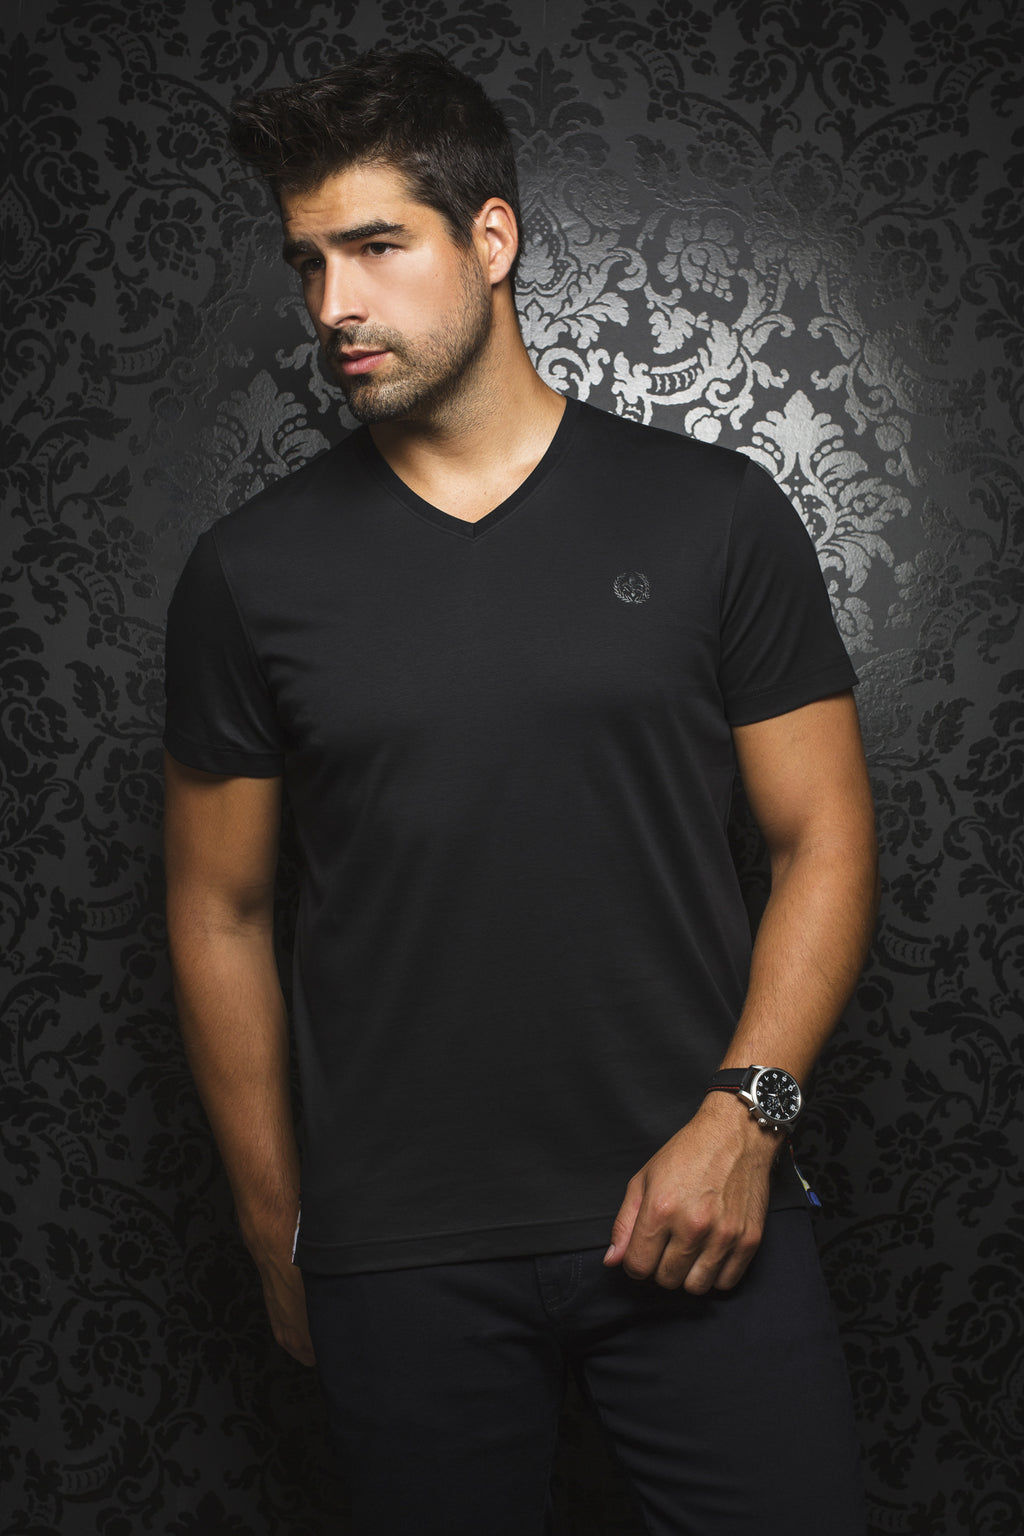 Au Noir T-Shirt V-Neck - Michael Black